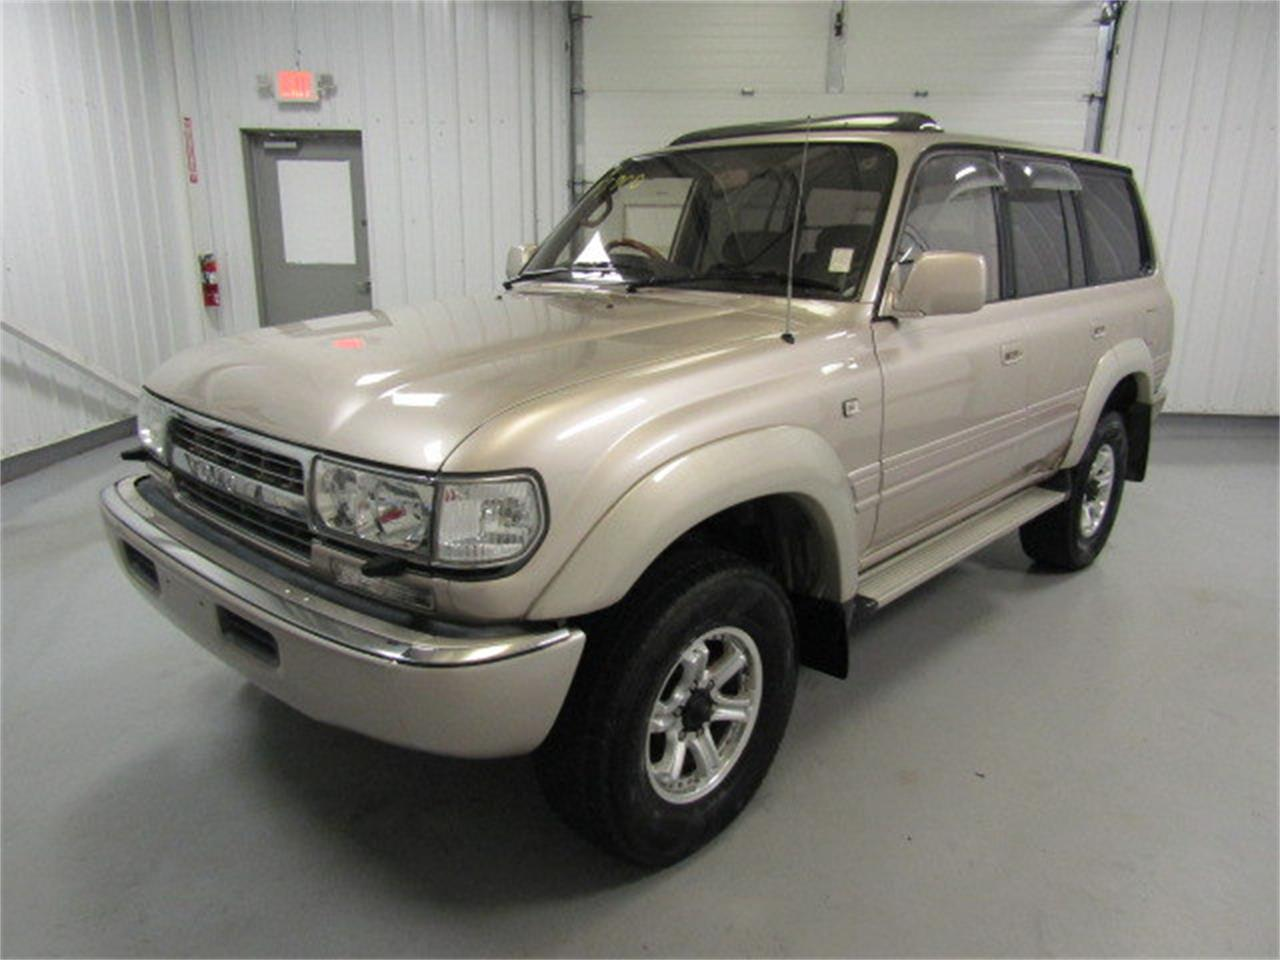 Large Picture of 1991 Toyota Land Cruiser FJ - $11,994.00 Offered by Duncan Imports & Classic Cars - LI66